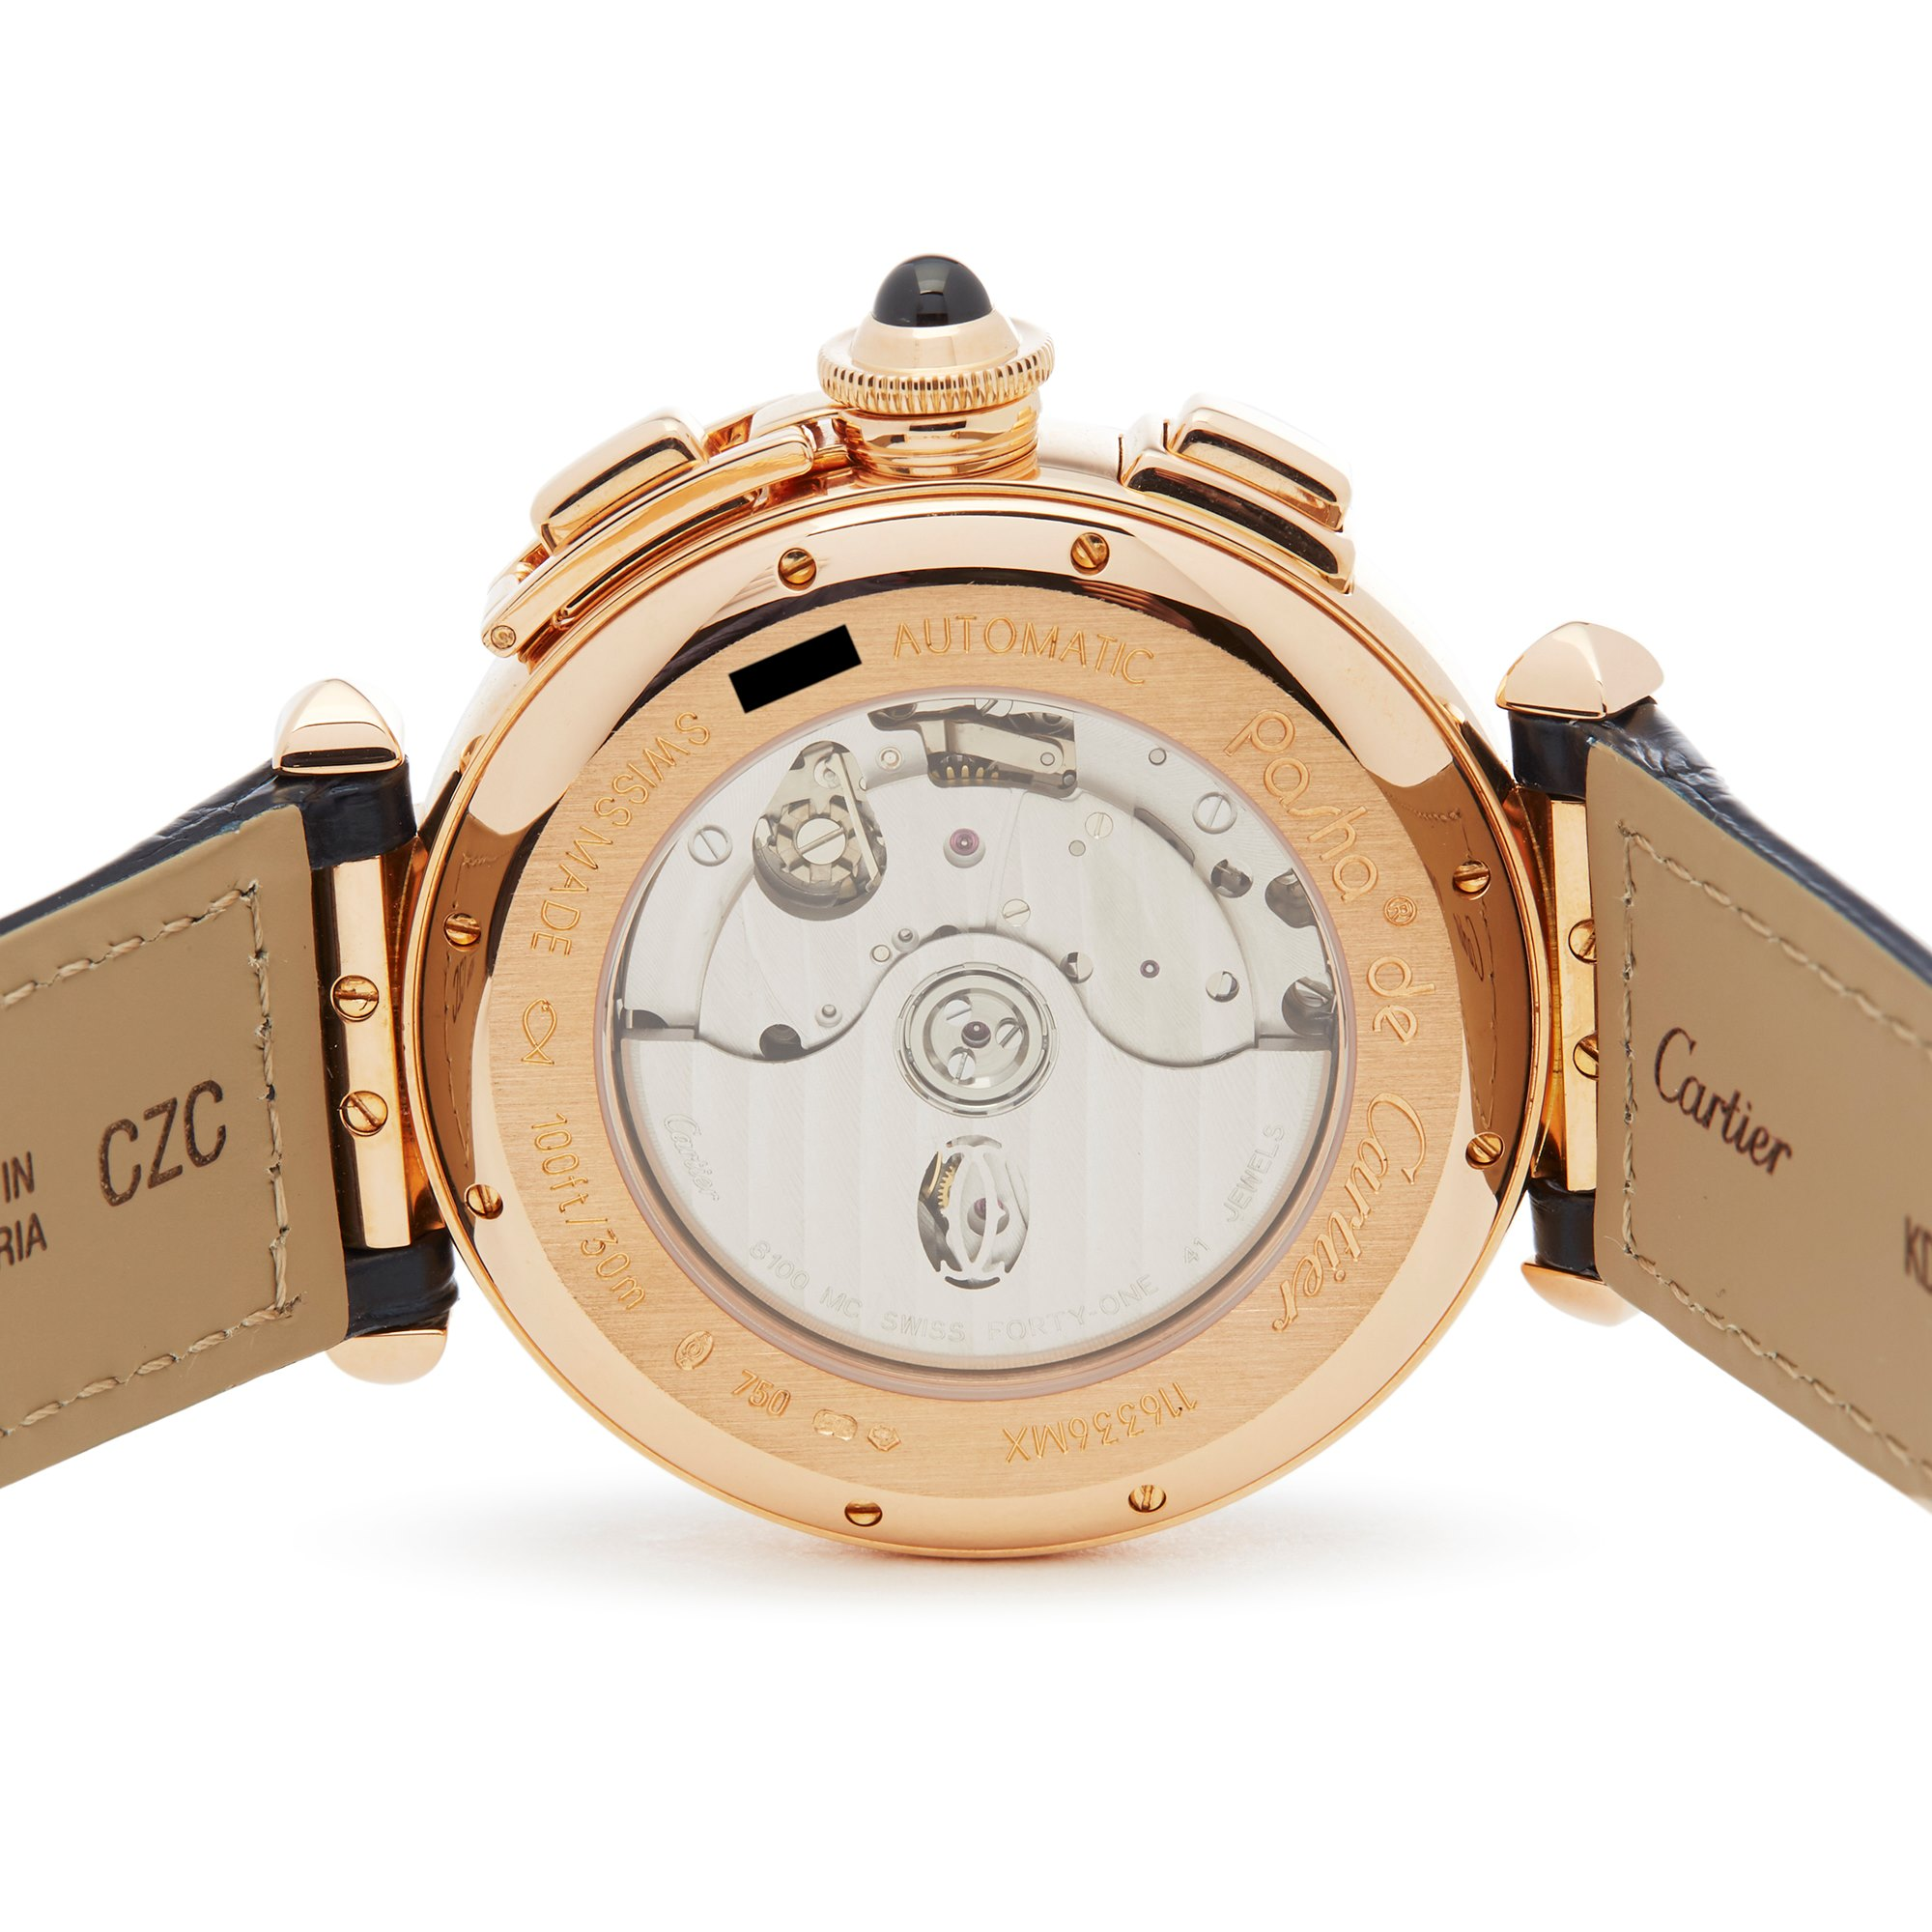 Cartier Pasha de Cartier Chronograph 18K Rose Goud W3019951 or 2863